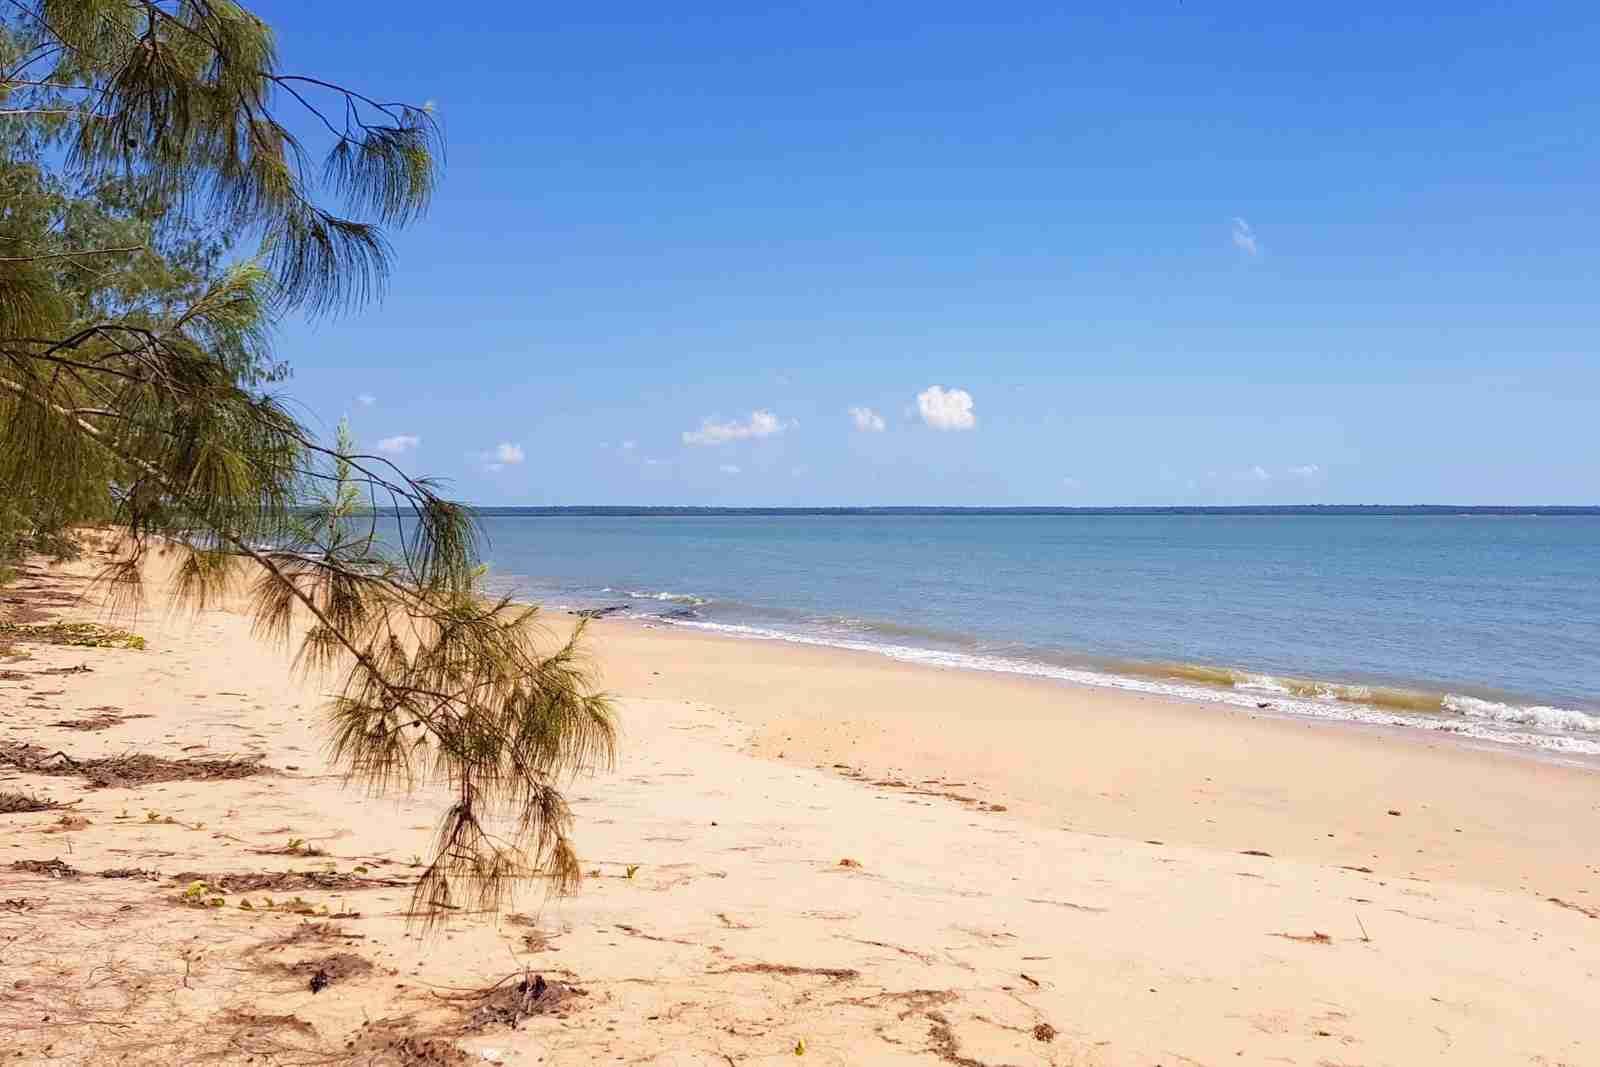 A beach on the Tiwi Islands, Northern Territory. (Photo via Shutterstock)